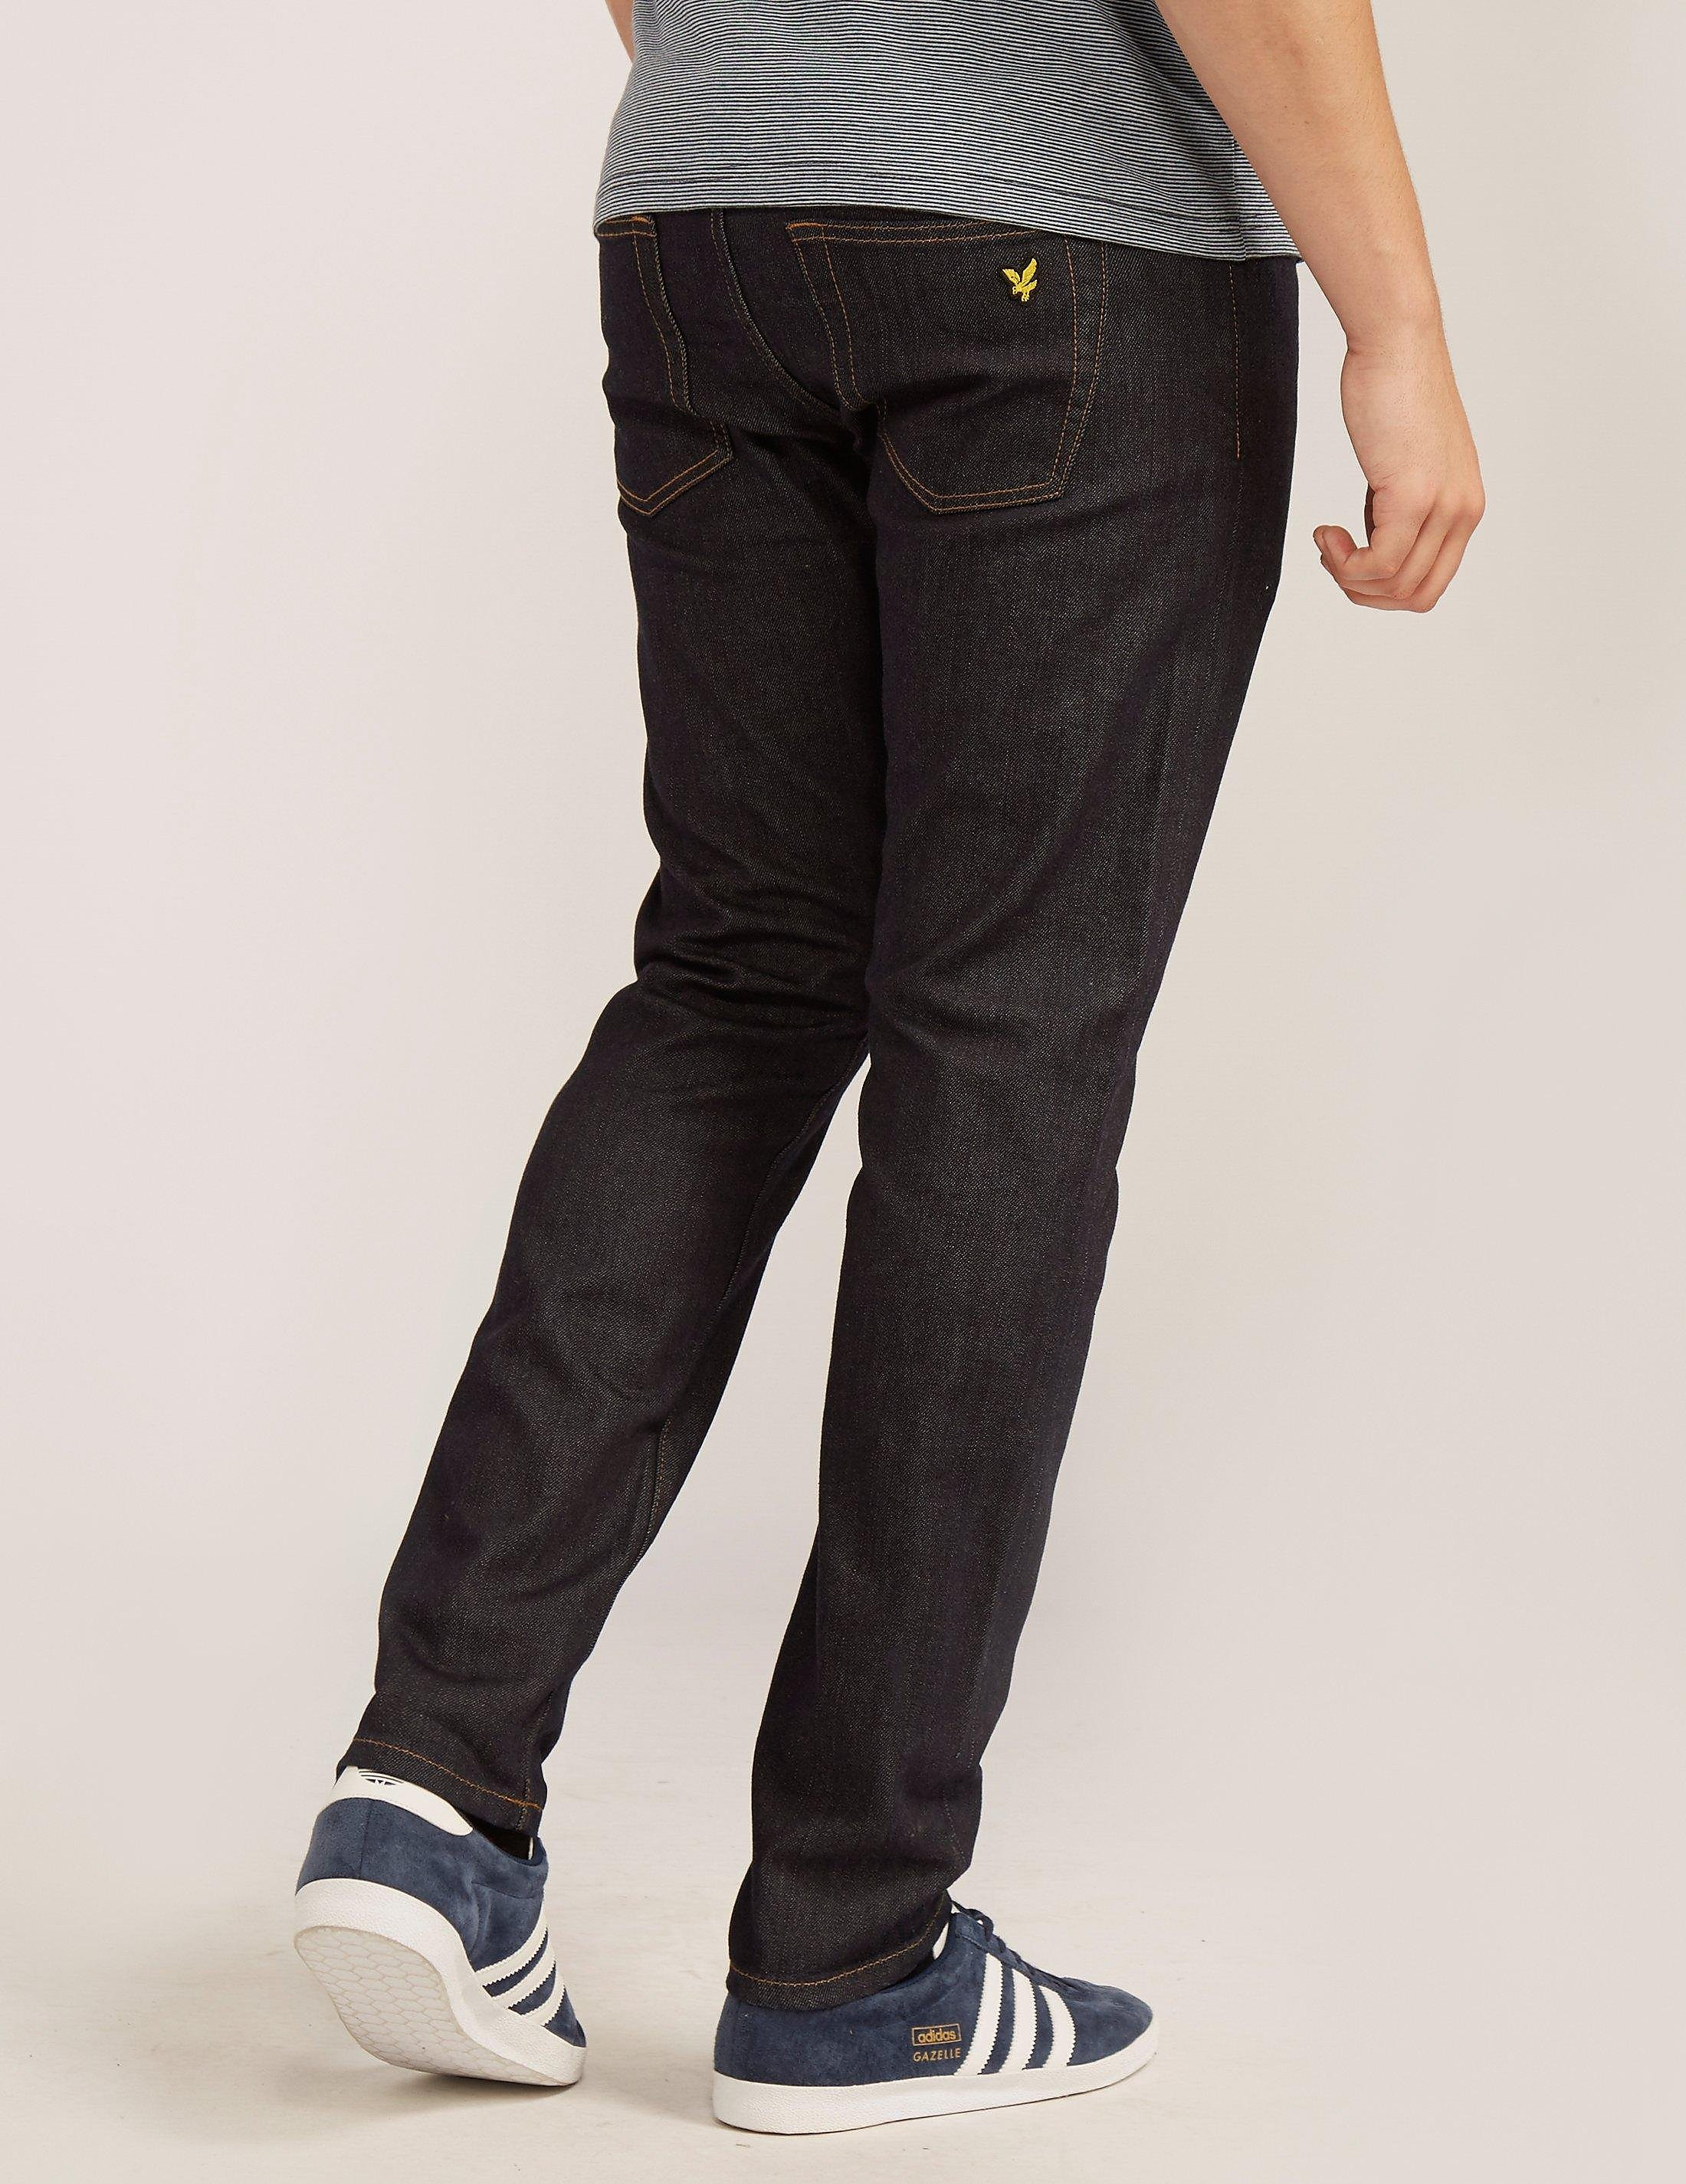 Lyle & Scott Slim 5 Pocket Jean